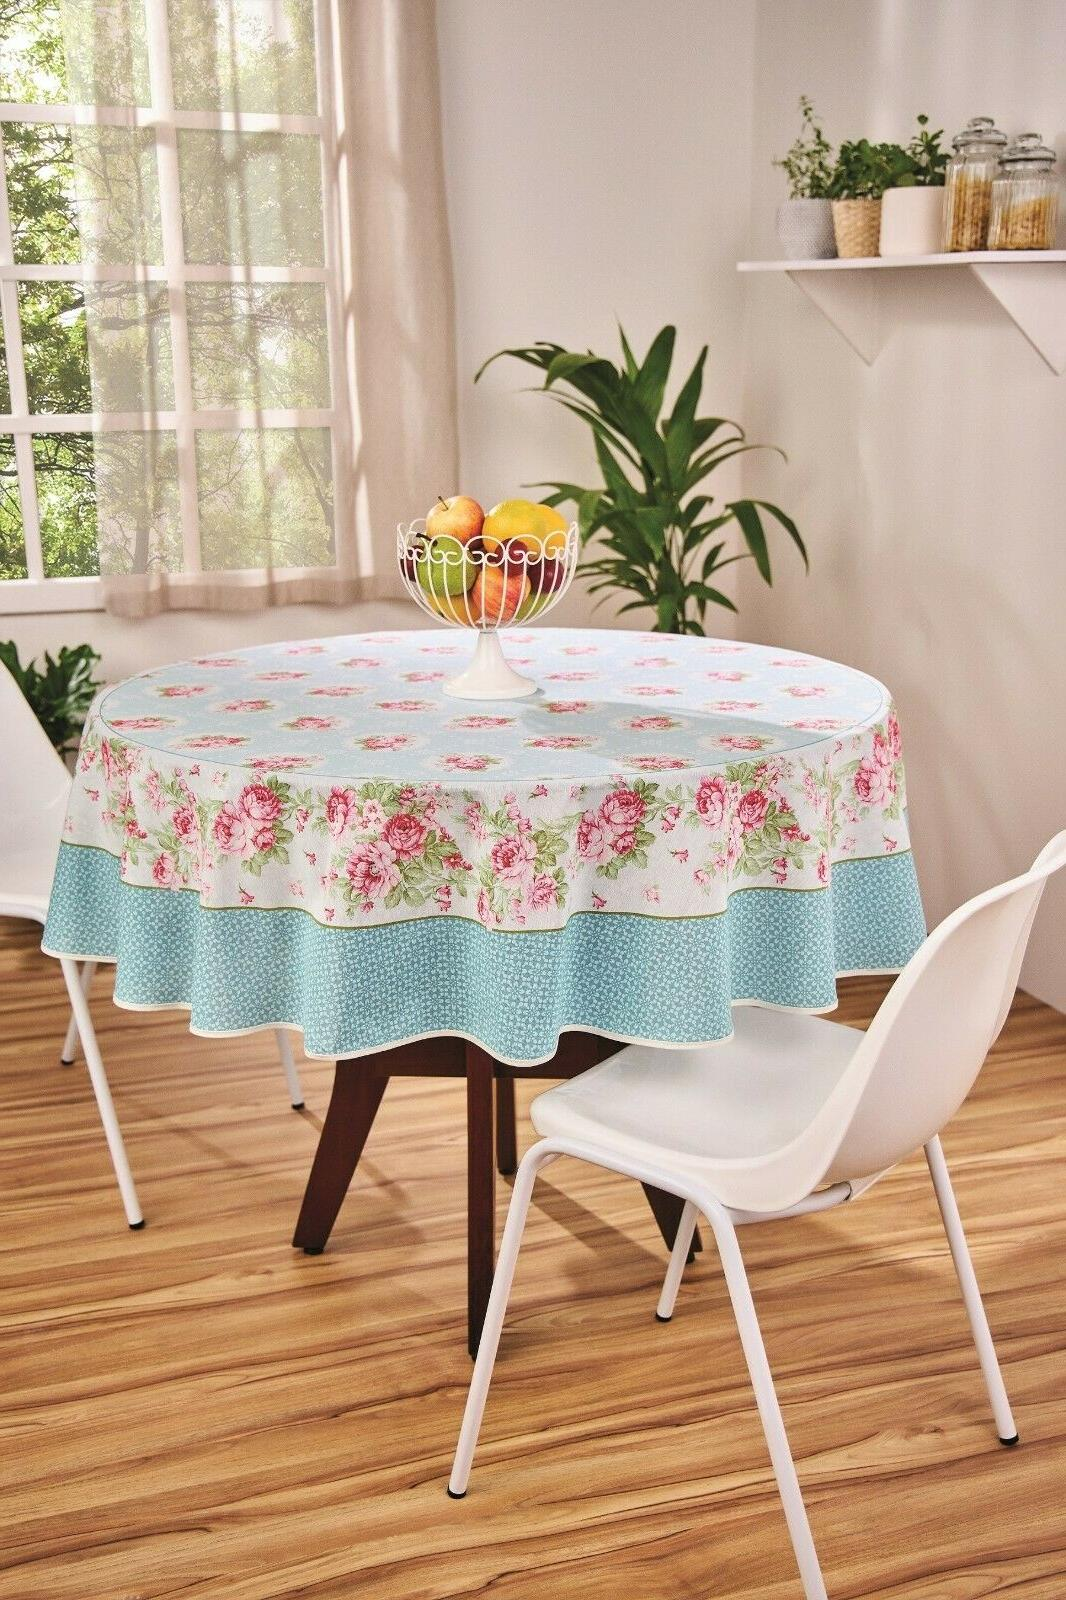 blue tablecloth with pink roses printed floral